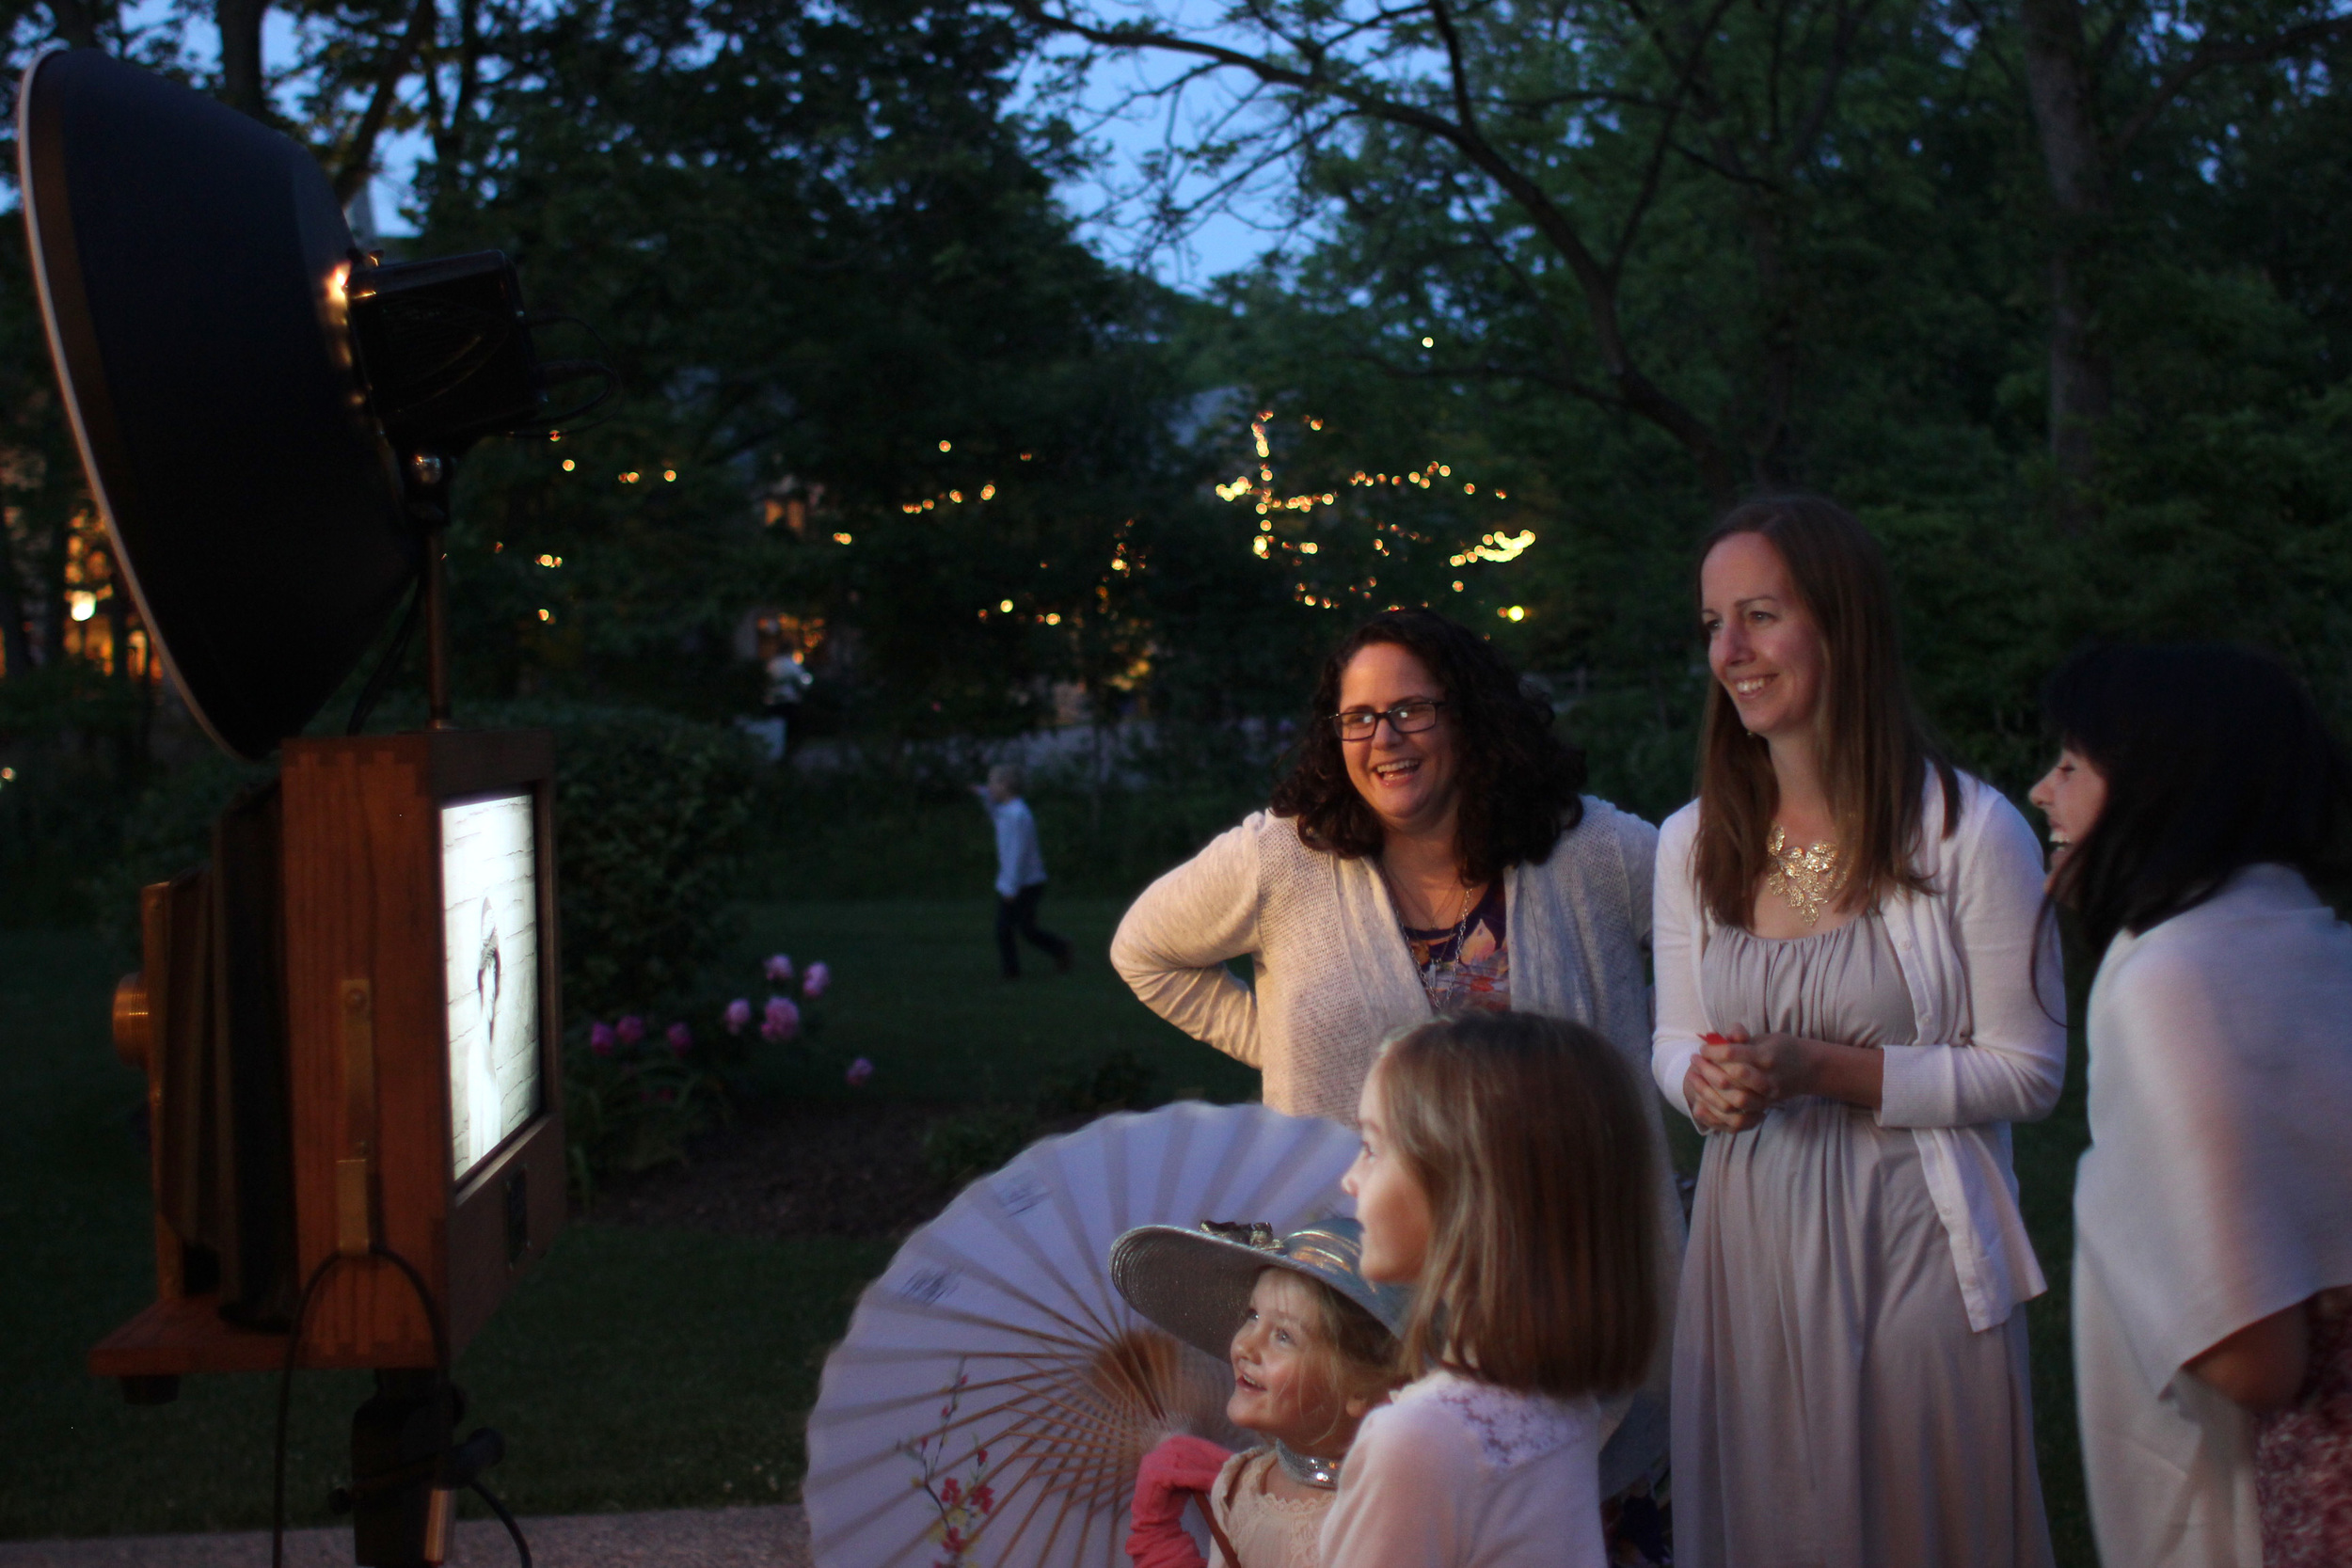 Everyone loves watching the Fotio slideshow during the wedding reception!